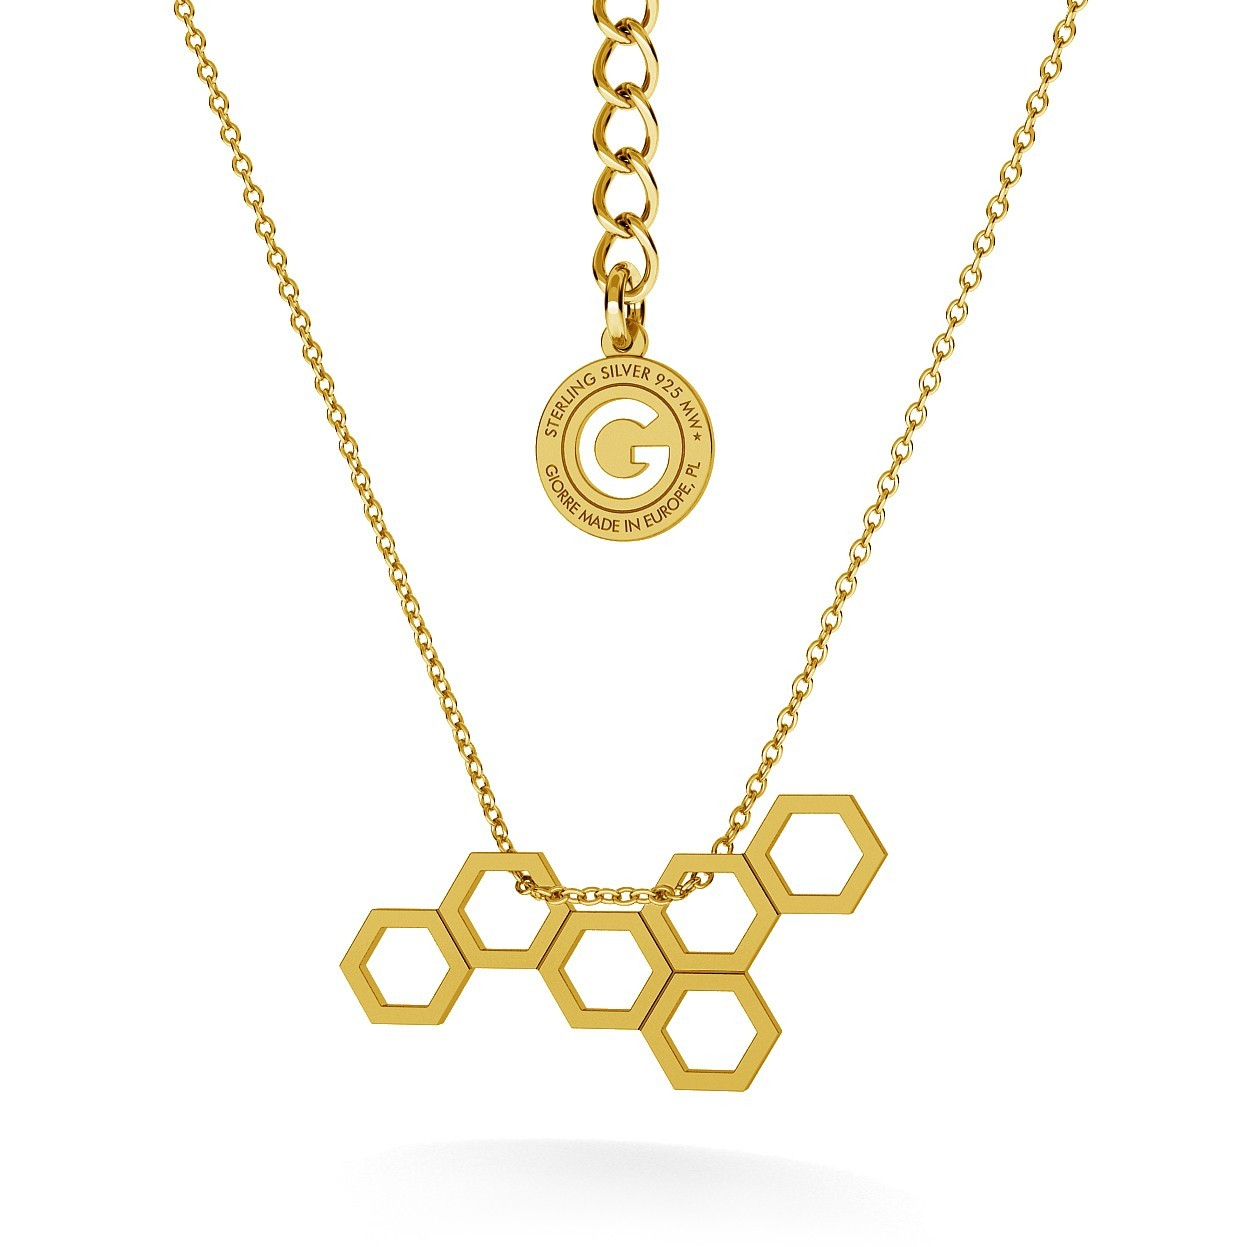 HONEYCOMB NECKLACE,  RHODIUM OR 18K GOLD PLATED,  RHODIUM OR 18K GOLD PLATED